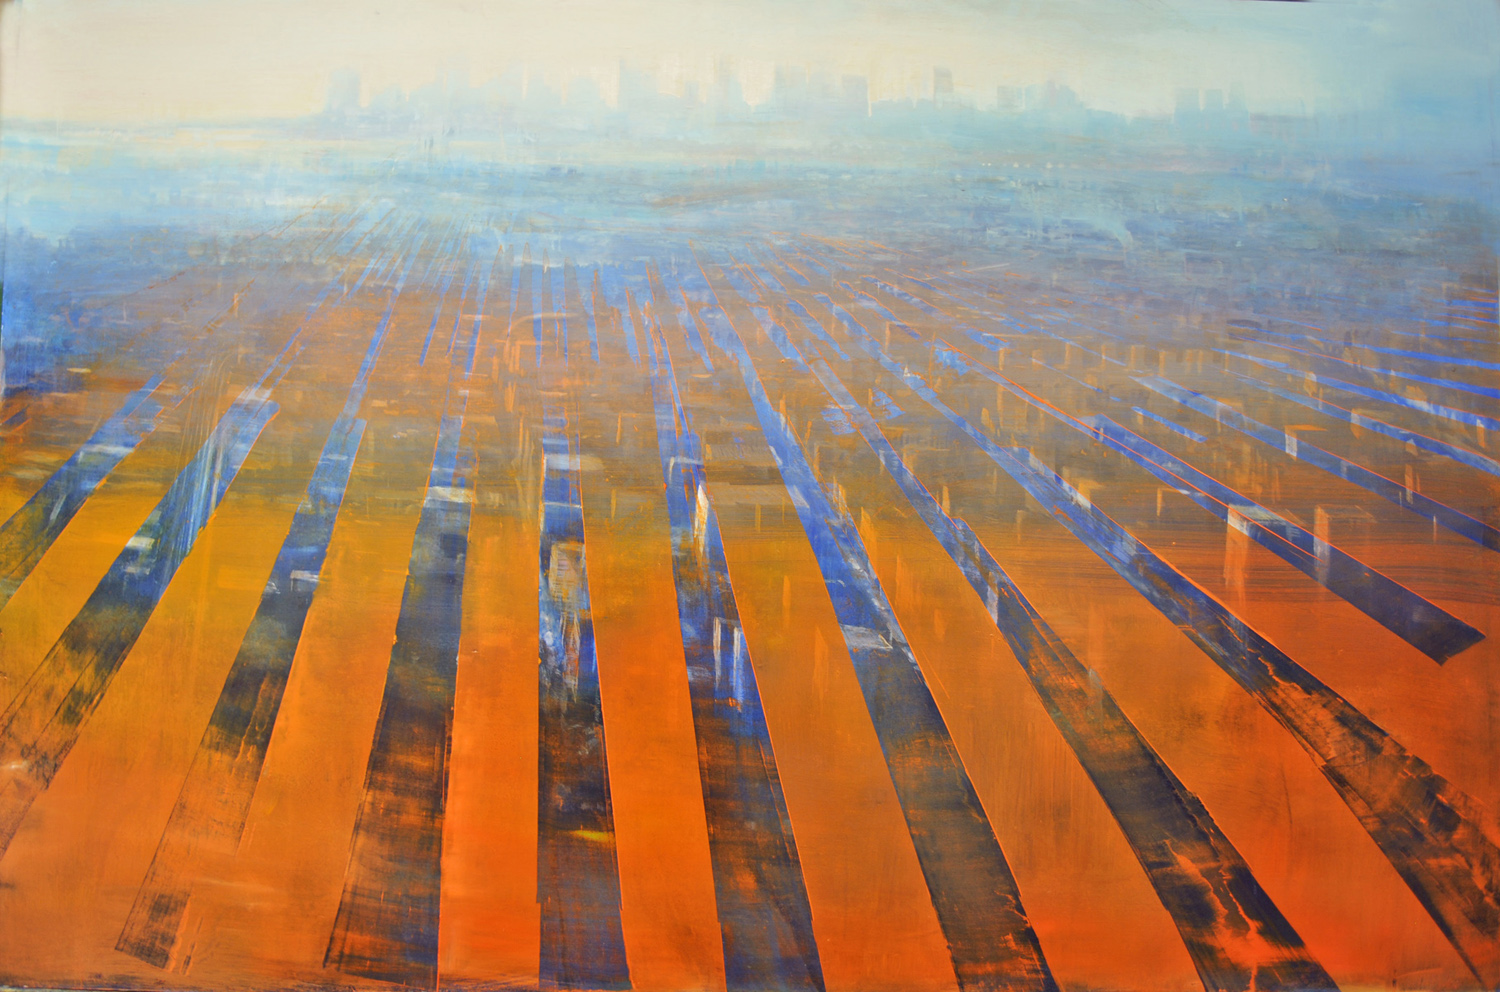 Dunlop_Manhattan Profile_oil on anodized aluminum_ 40x60.jpg